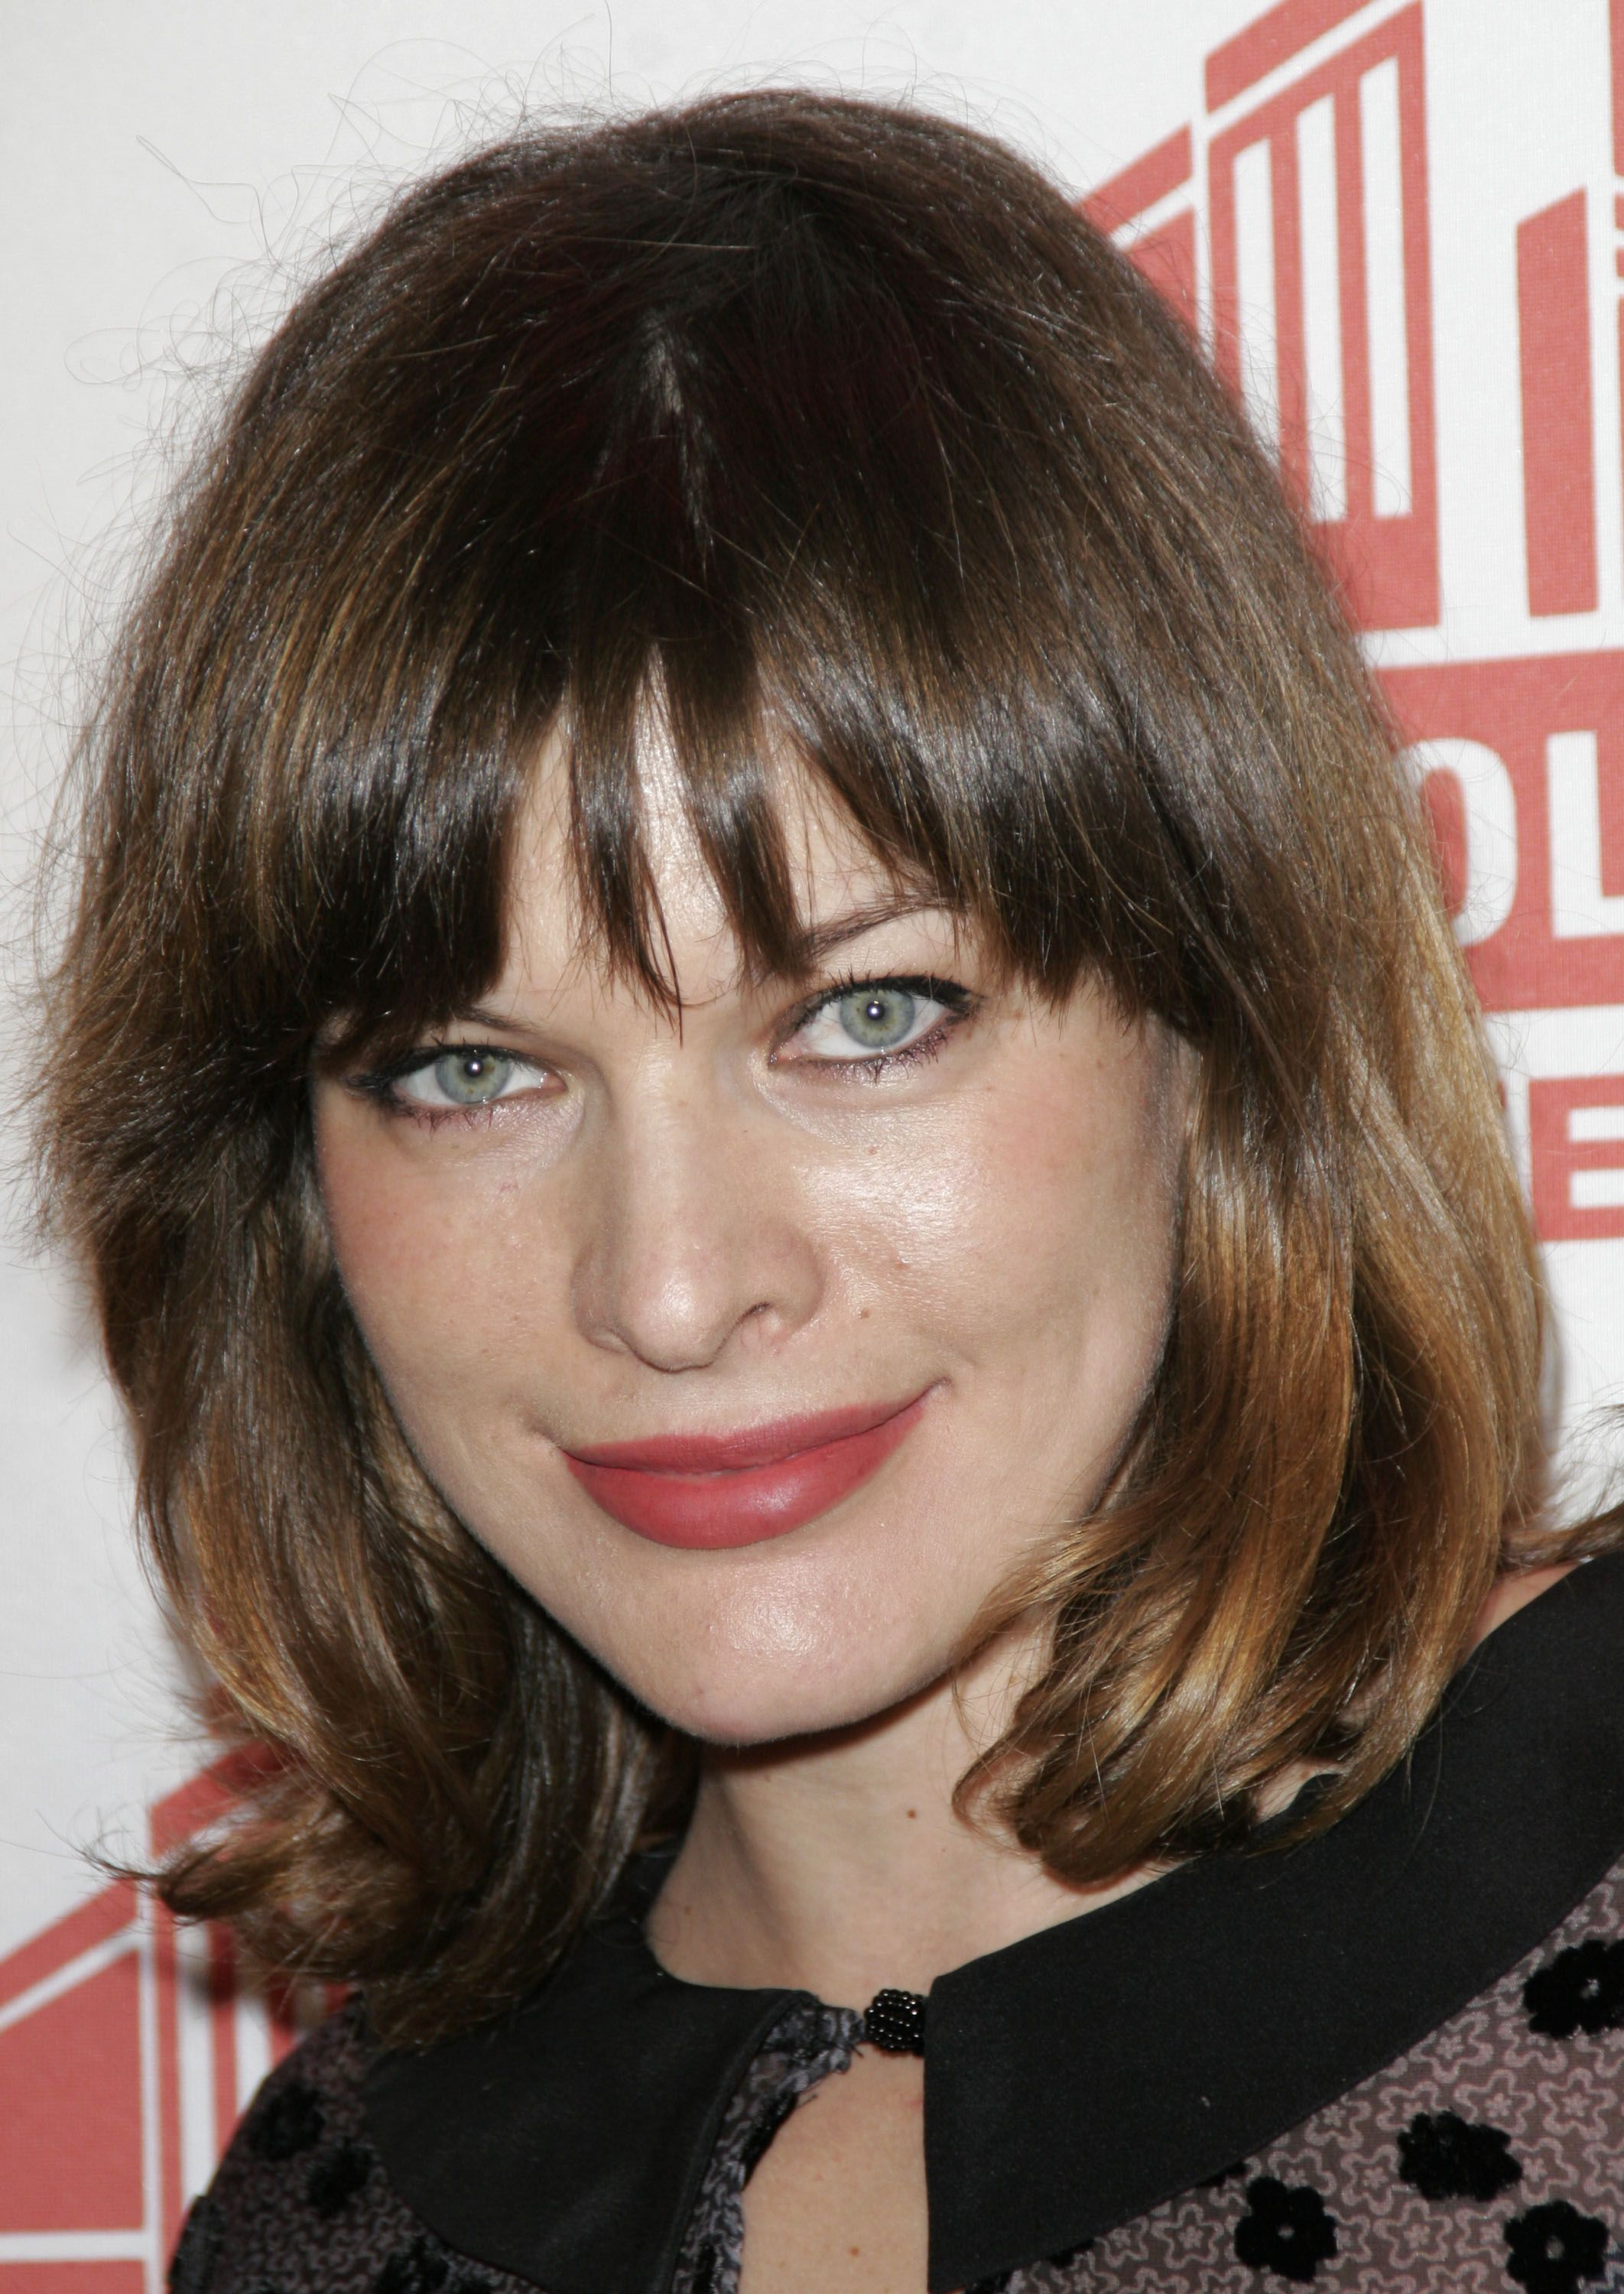 Milla Jovovich Short Brown Bob Hairstyle with Bouns Waves Milla Jovovich Short Brown Bob Hairstyle with Bouns Waves new pictures